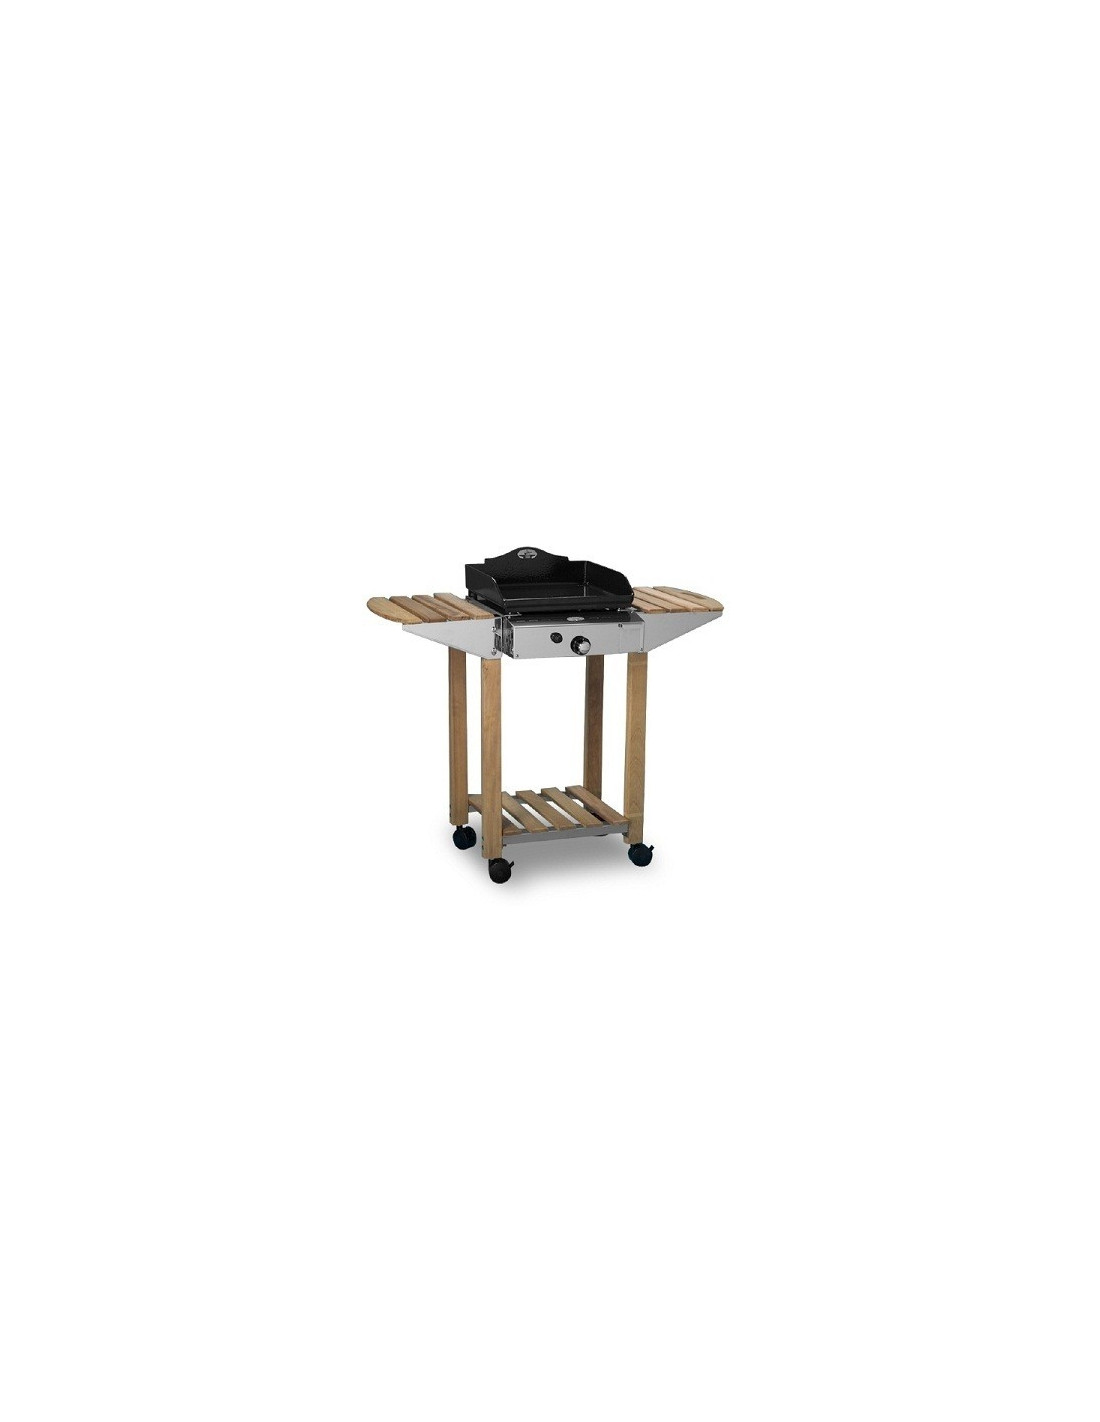 chariot plancha en bois forge adour prestige esprit barbecue. Black Bedroom Furniture Sets. Home Design Ideas